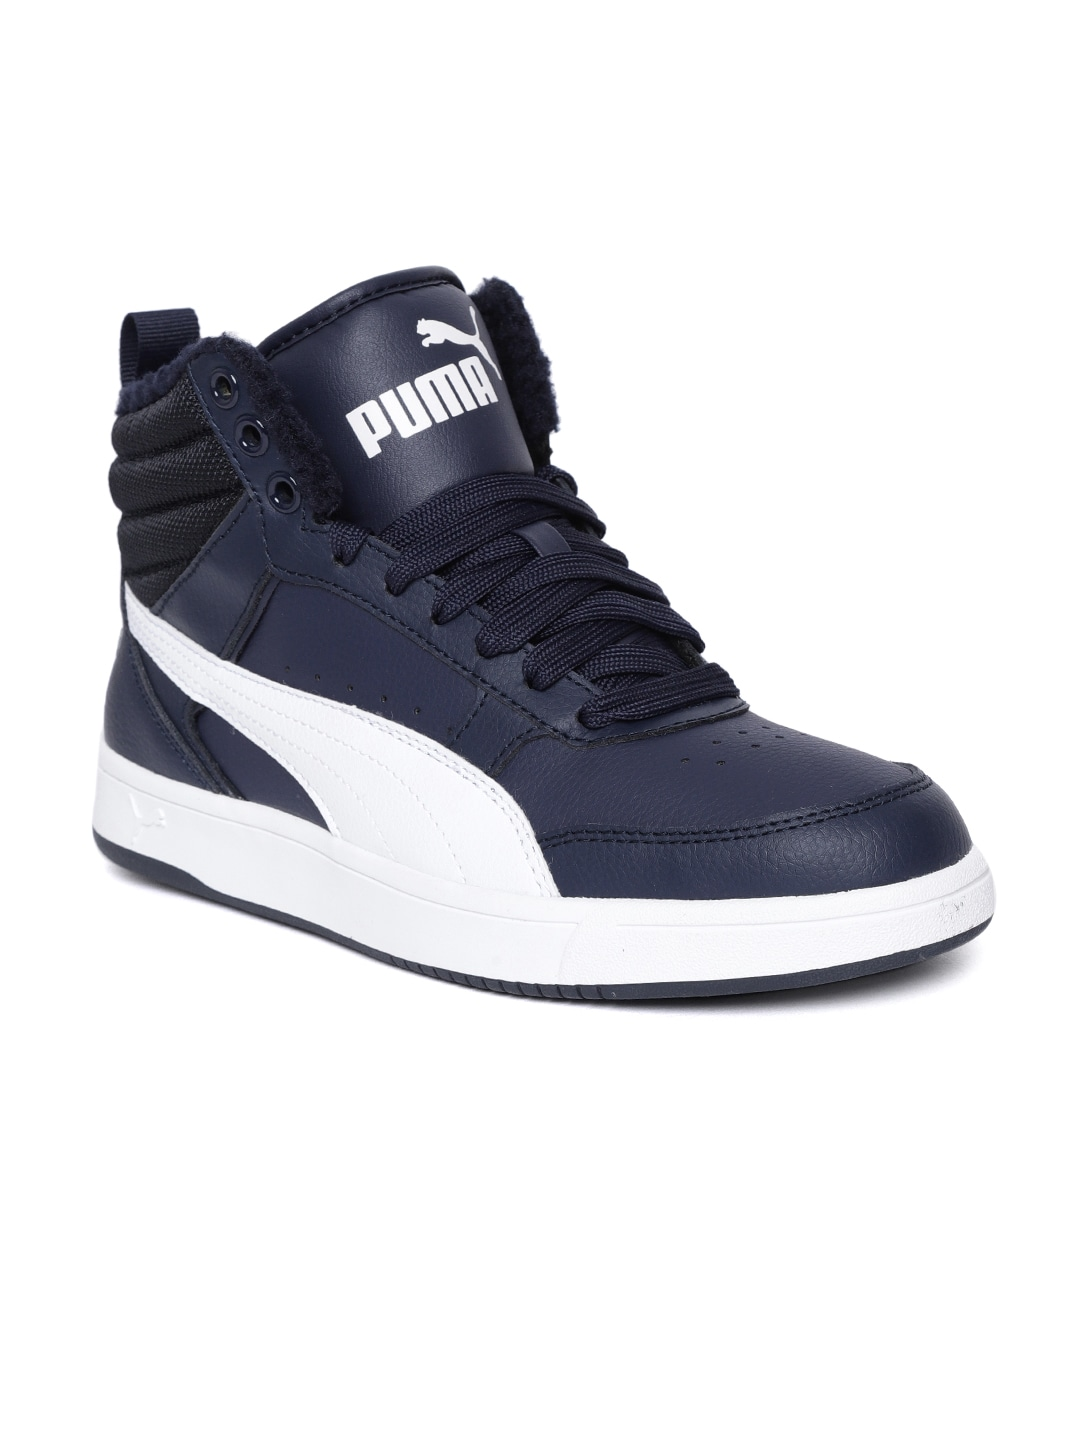 42da55fafb6 Puma Blue Shoe - Buy Puma Blue Shoe online in India